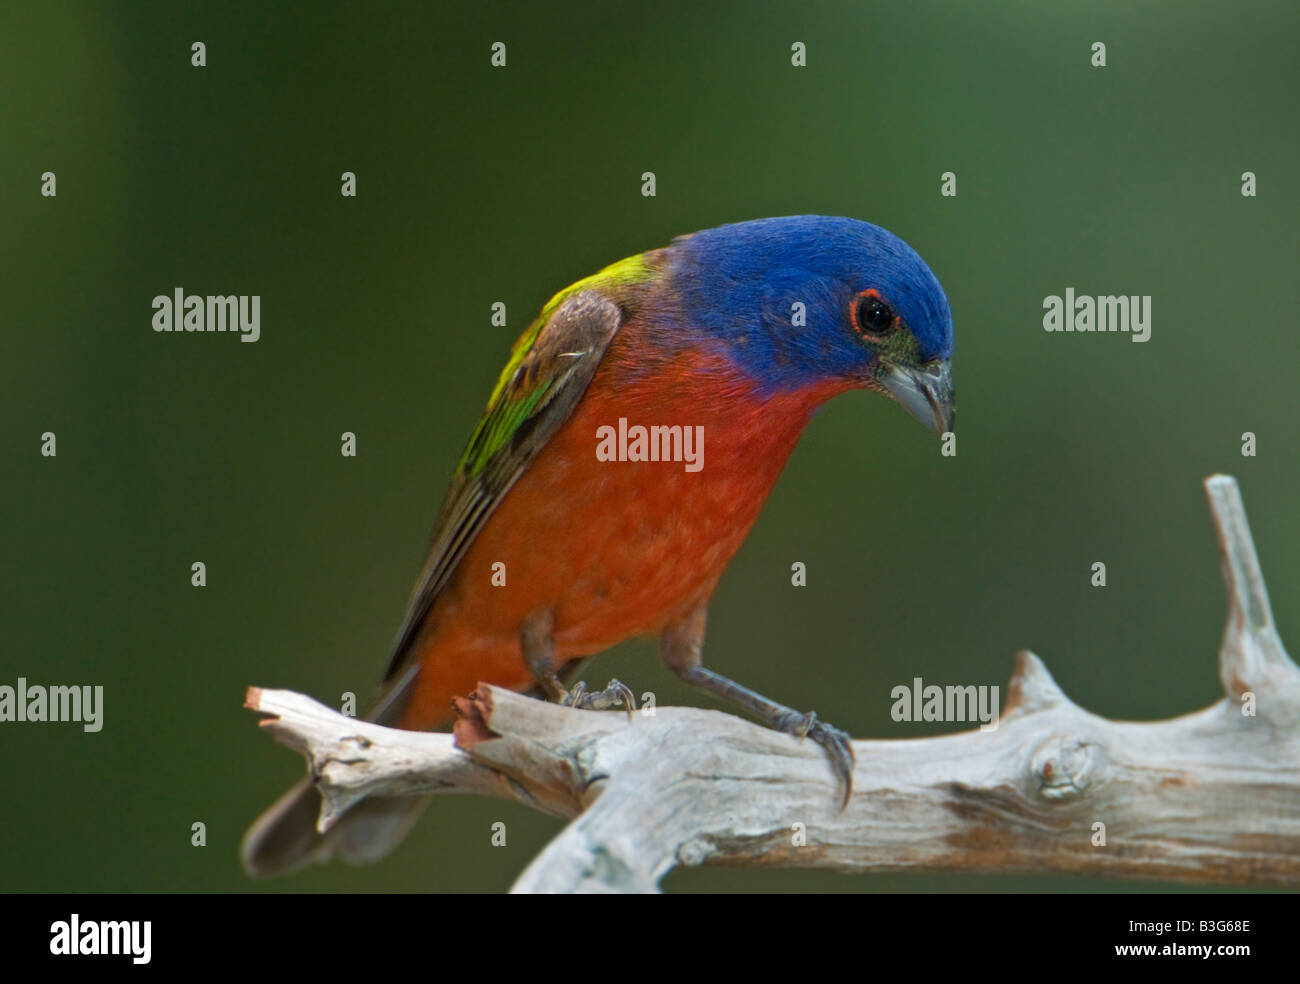 Digital image of a colorful Painted Bunting perched on a limb - Stock Image